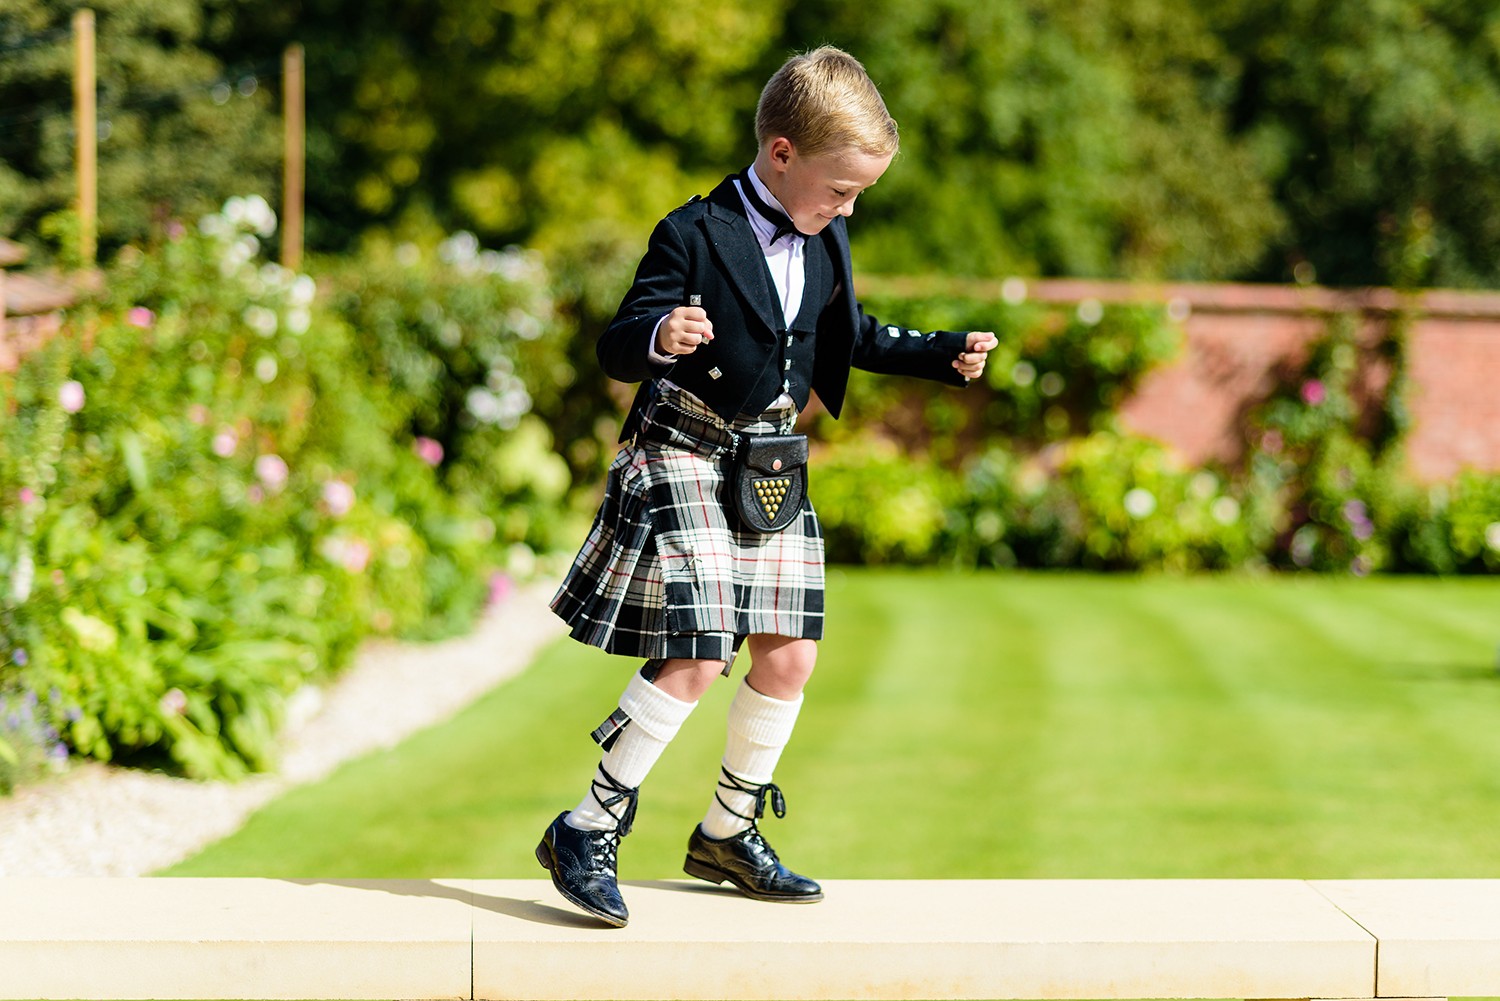 Child in kilt dancing in walled garden